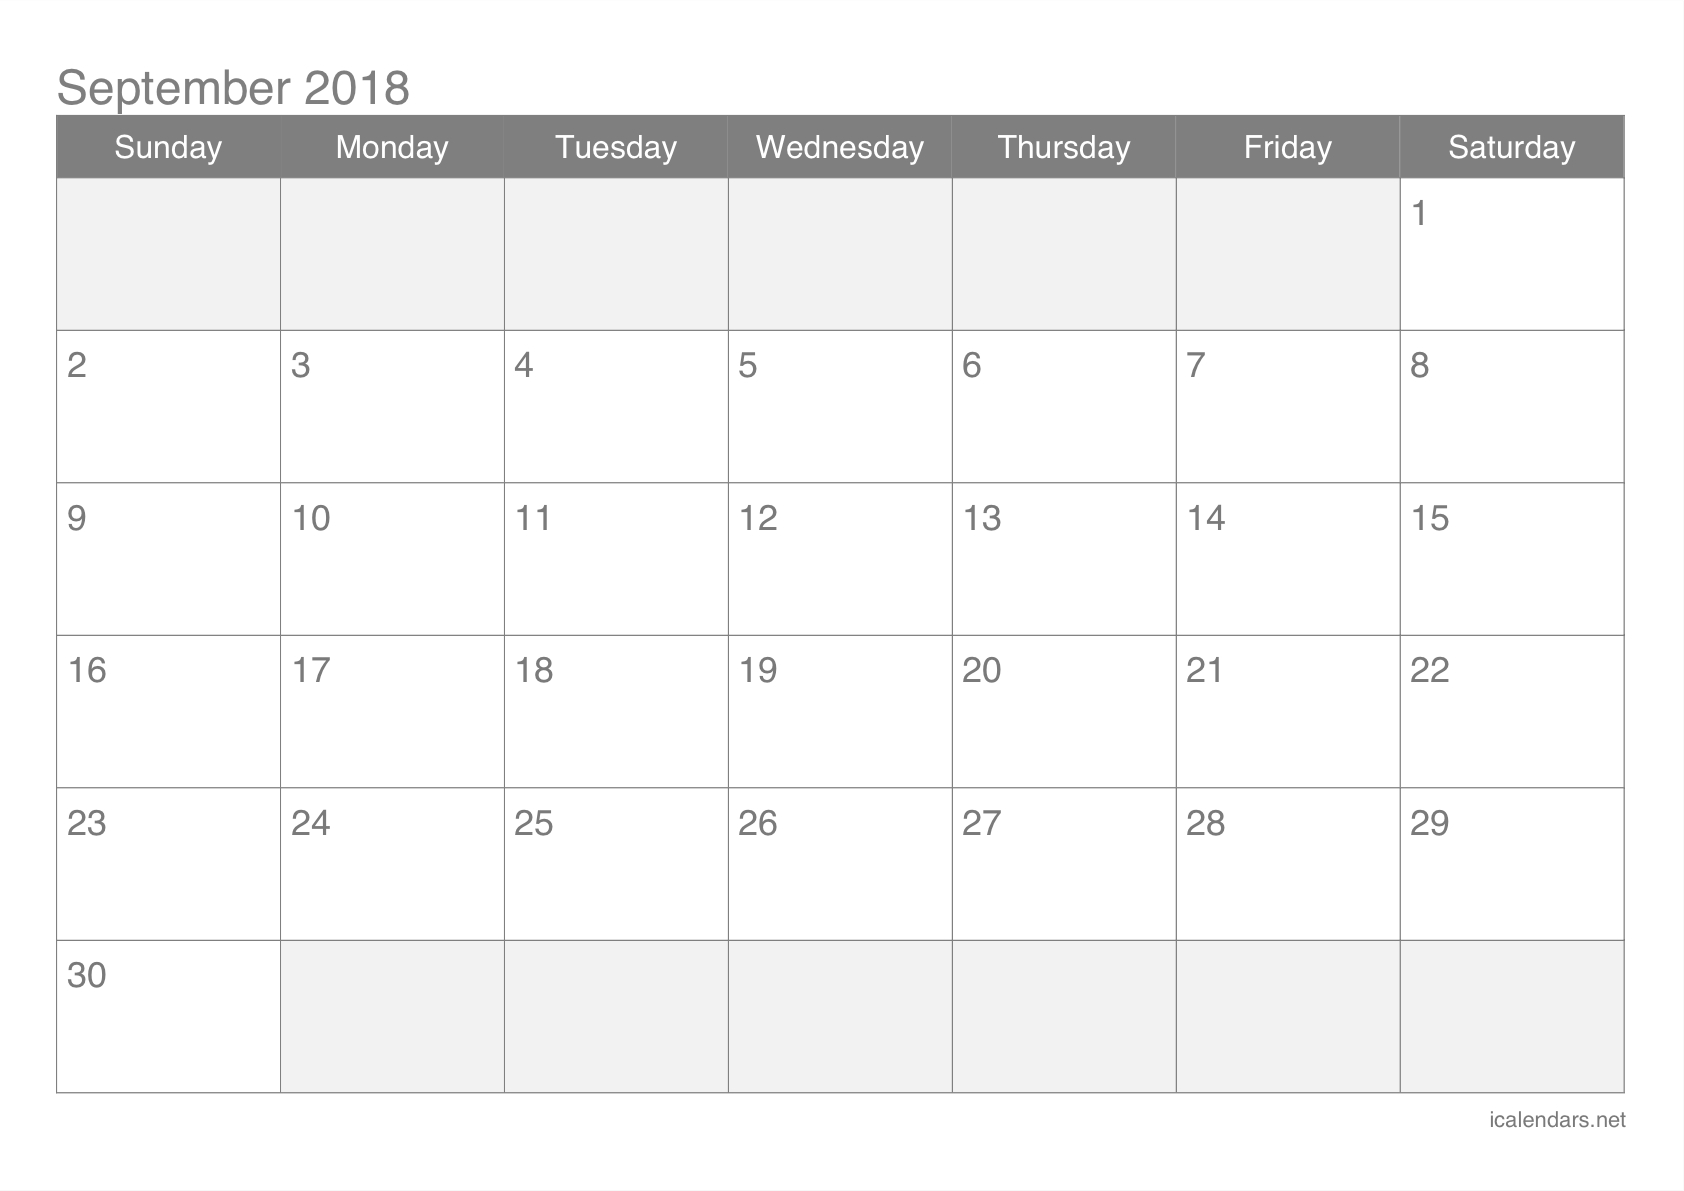 September 2018 Printable Calendar - Icalendars with regard to Print Calendar Month Of September